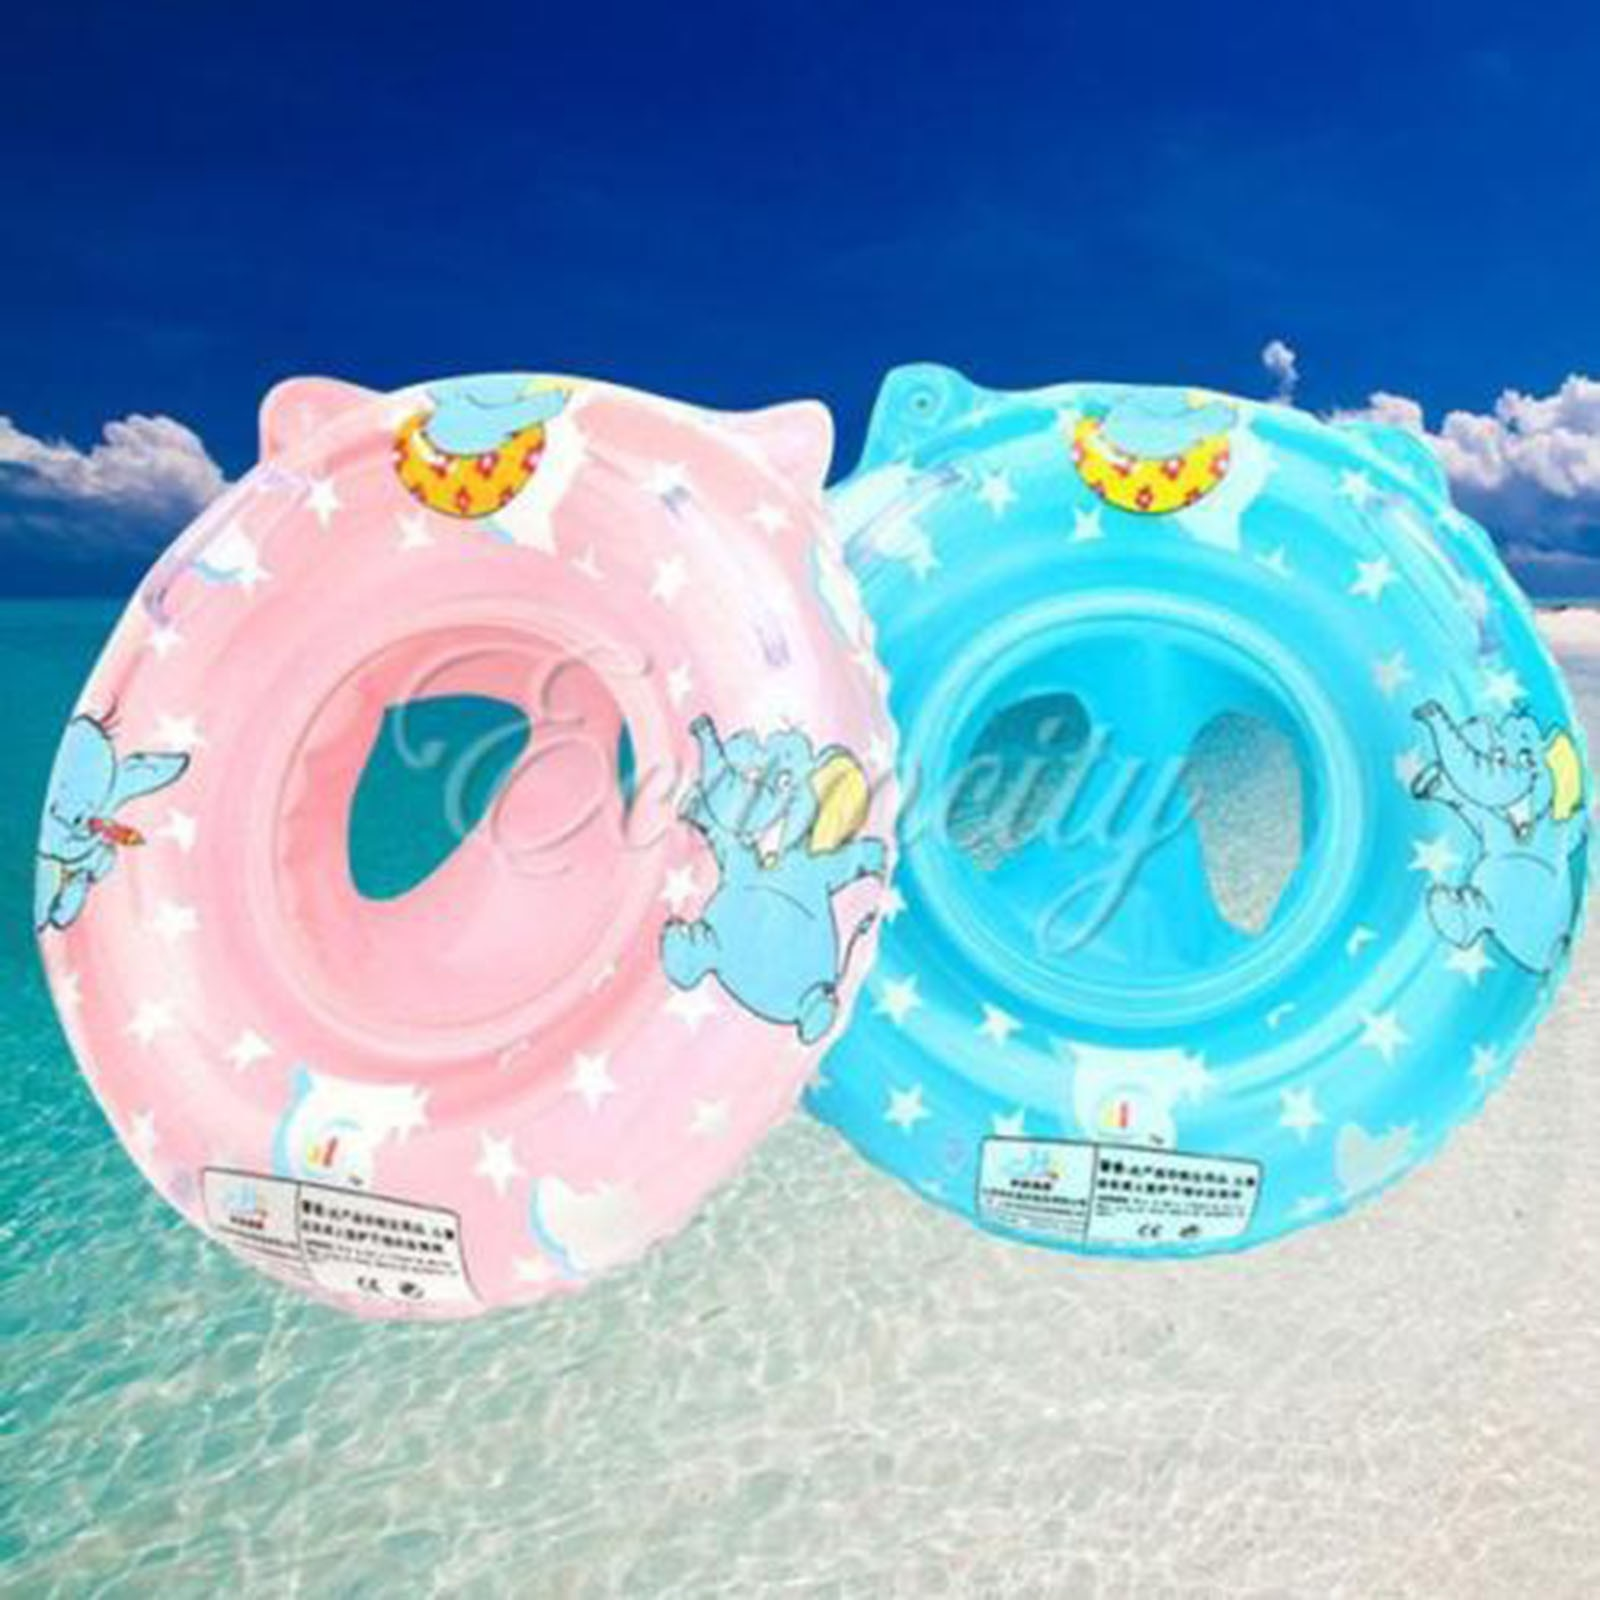 Swimming Pool Ring Handle Pro Inflatable Baby Chair Child Raft Seat Float Safety Child Handle Safety Seat Float Ring Raft Chair